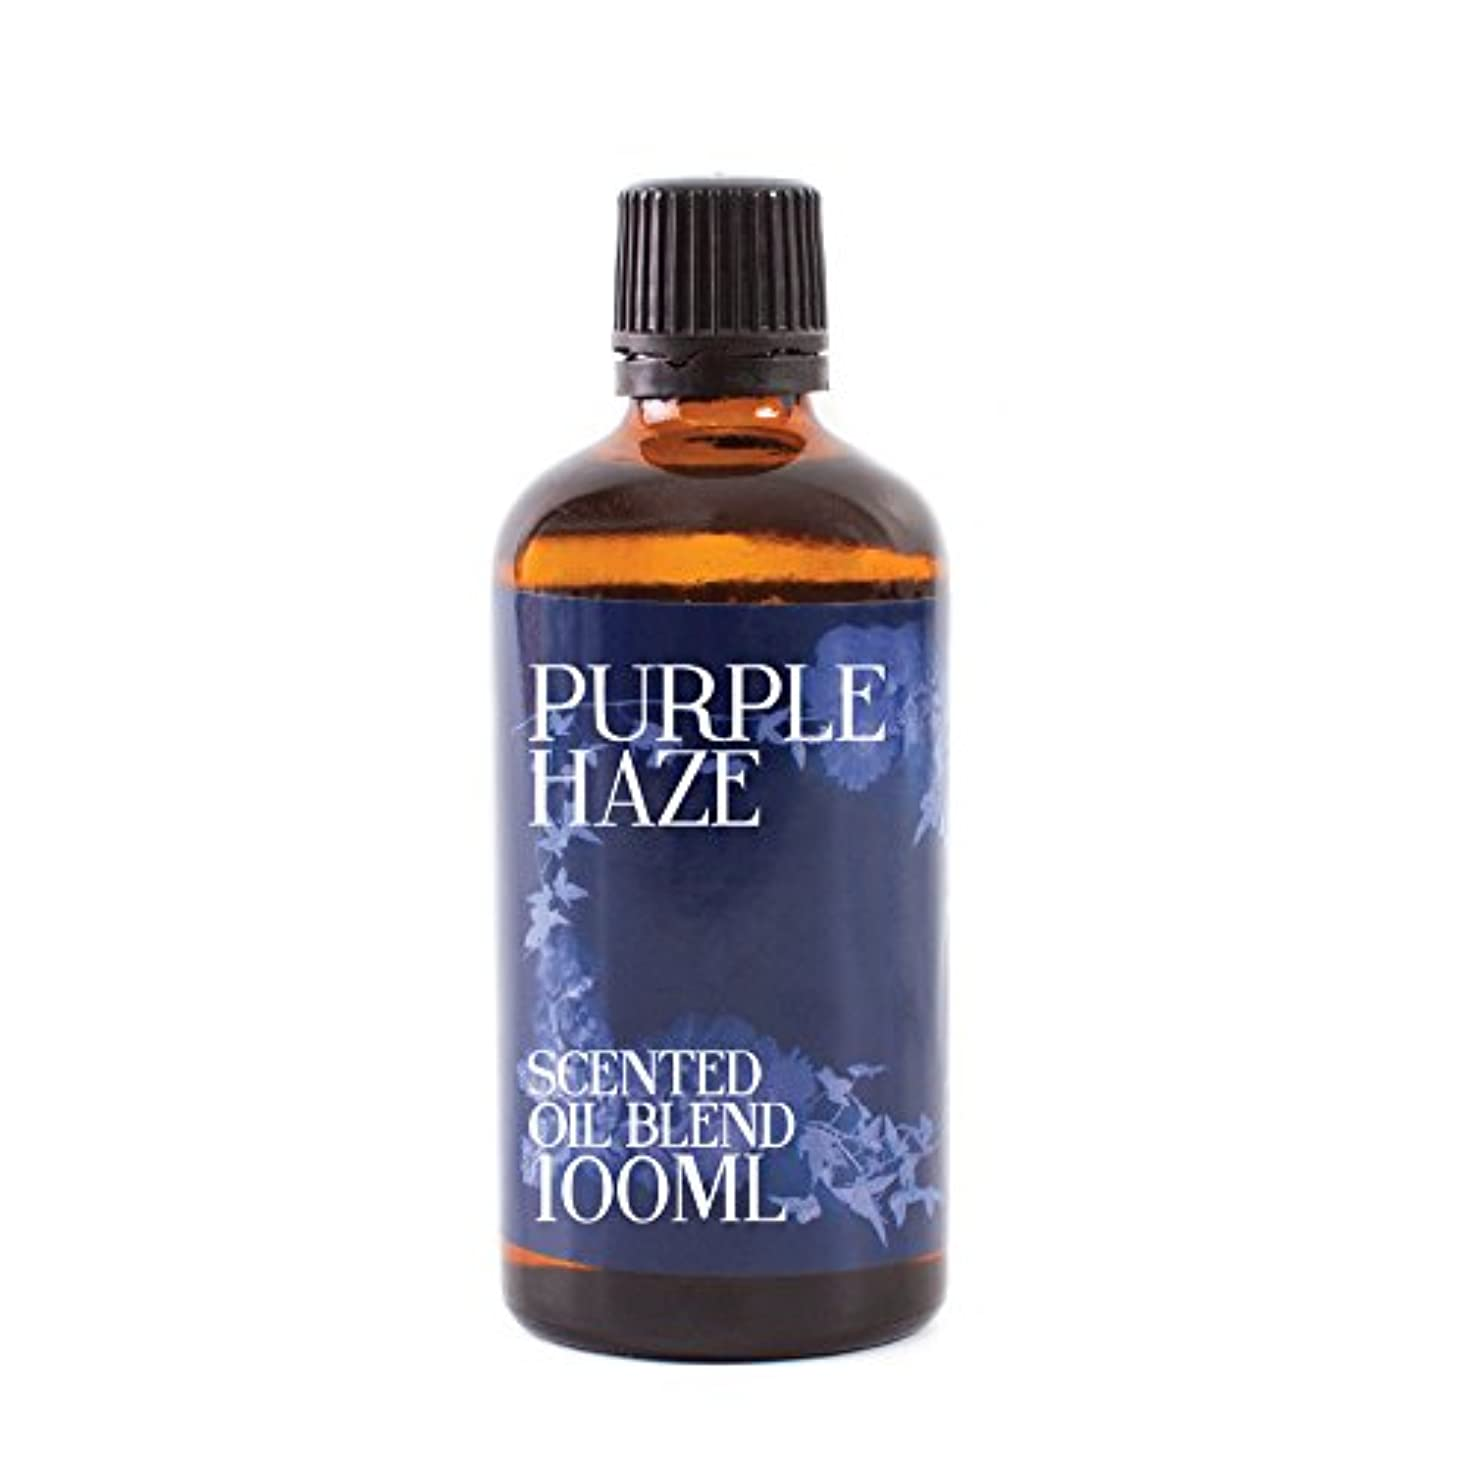 改革経済コロニアルMystic Moments | Purple Haze - Scented Oil Blend - 100ml